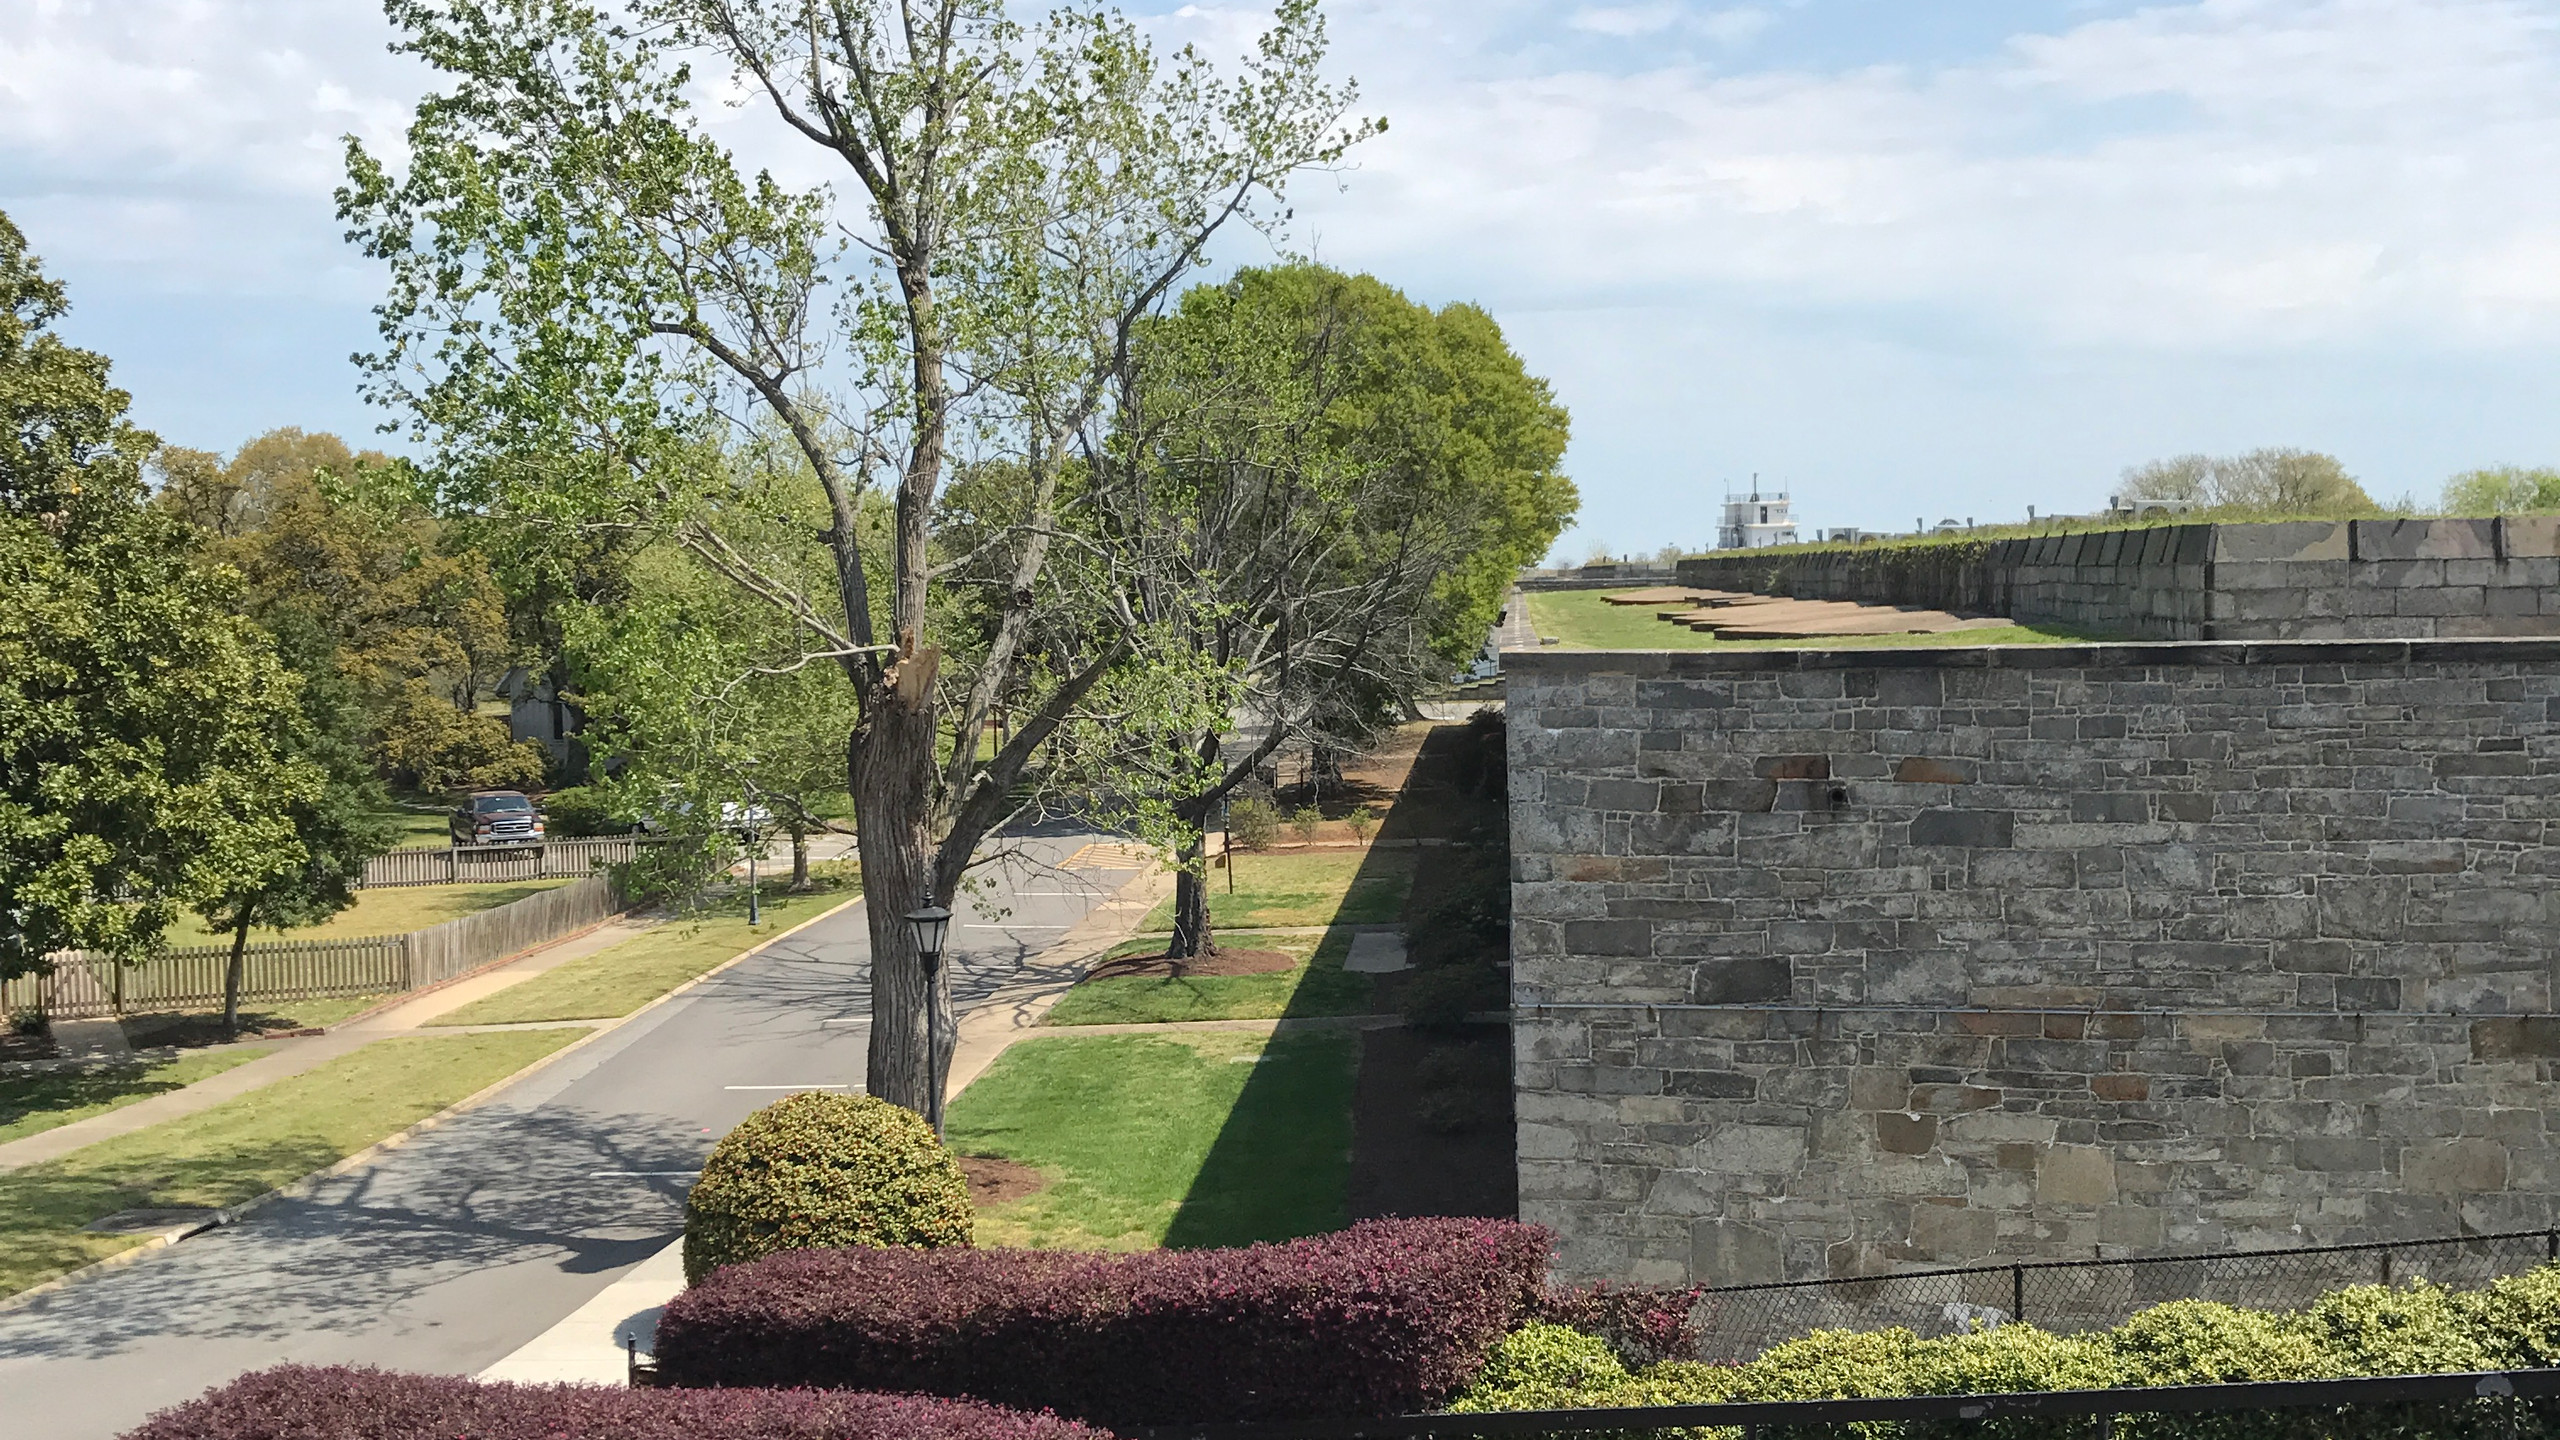 On top of the fort